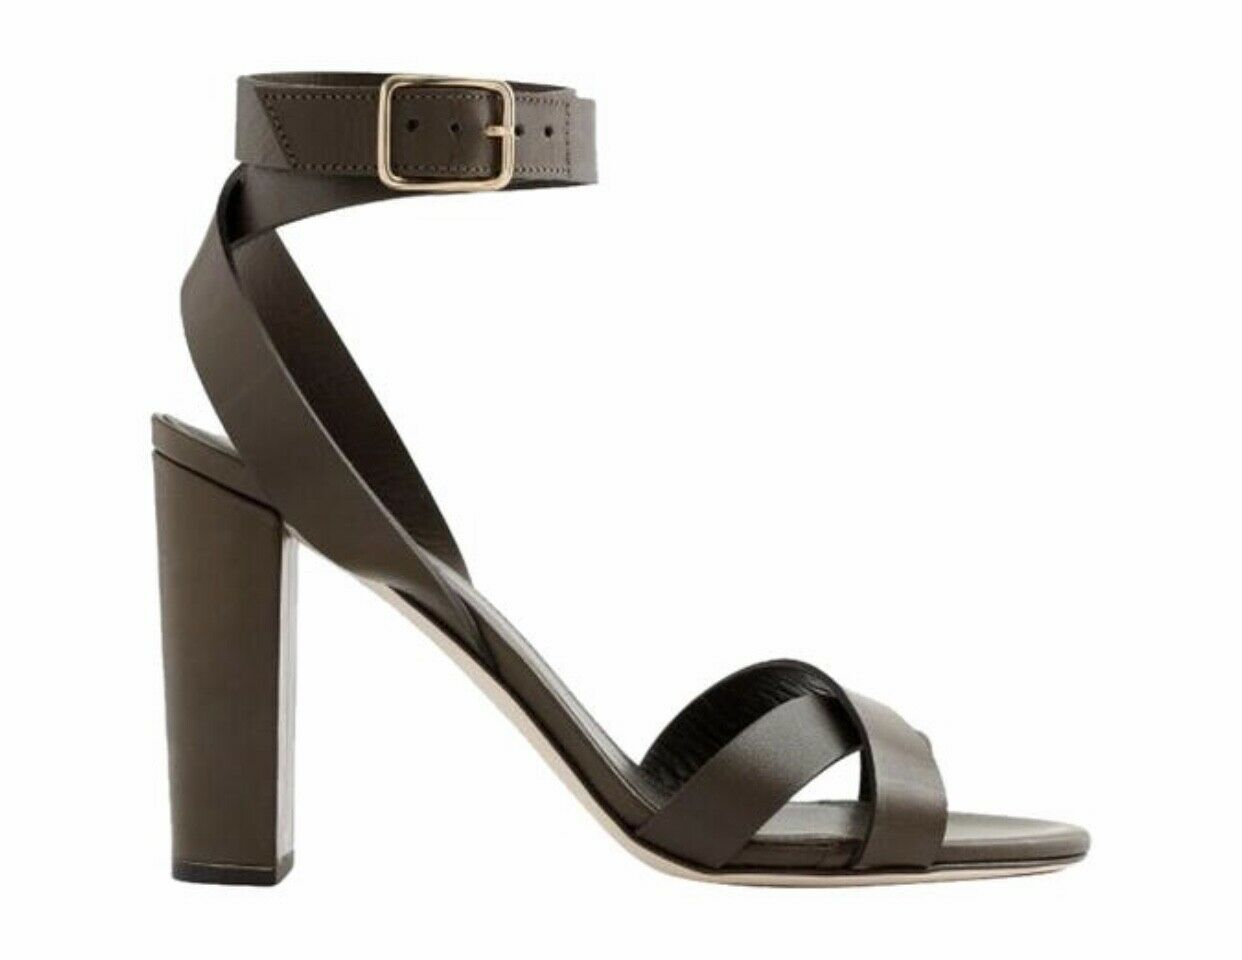 J. crew leather strap cross sandals 7m numbers distressed olive verde e7308